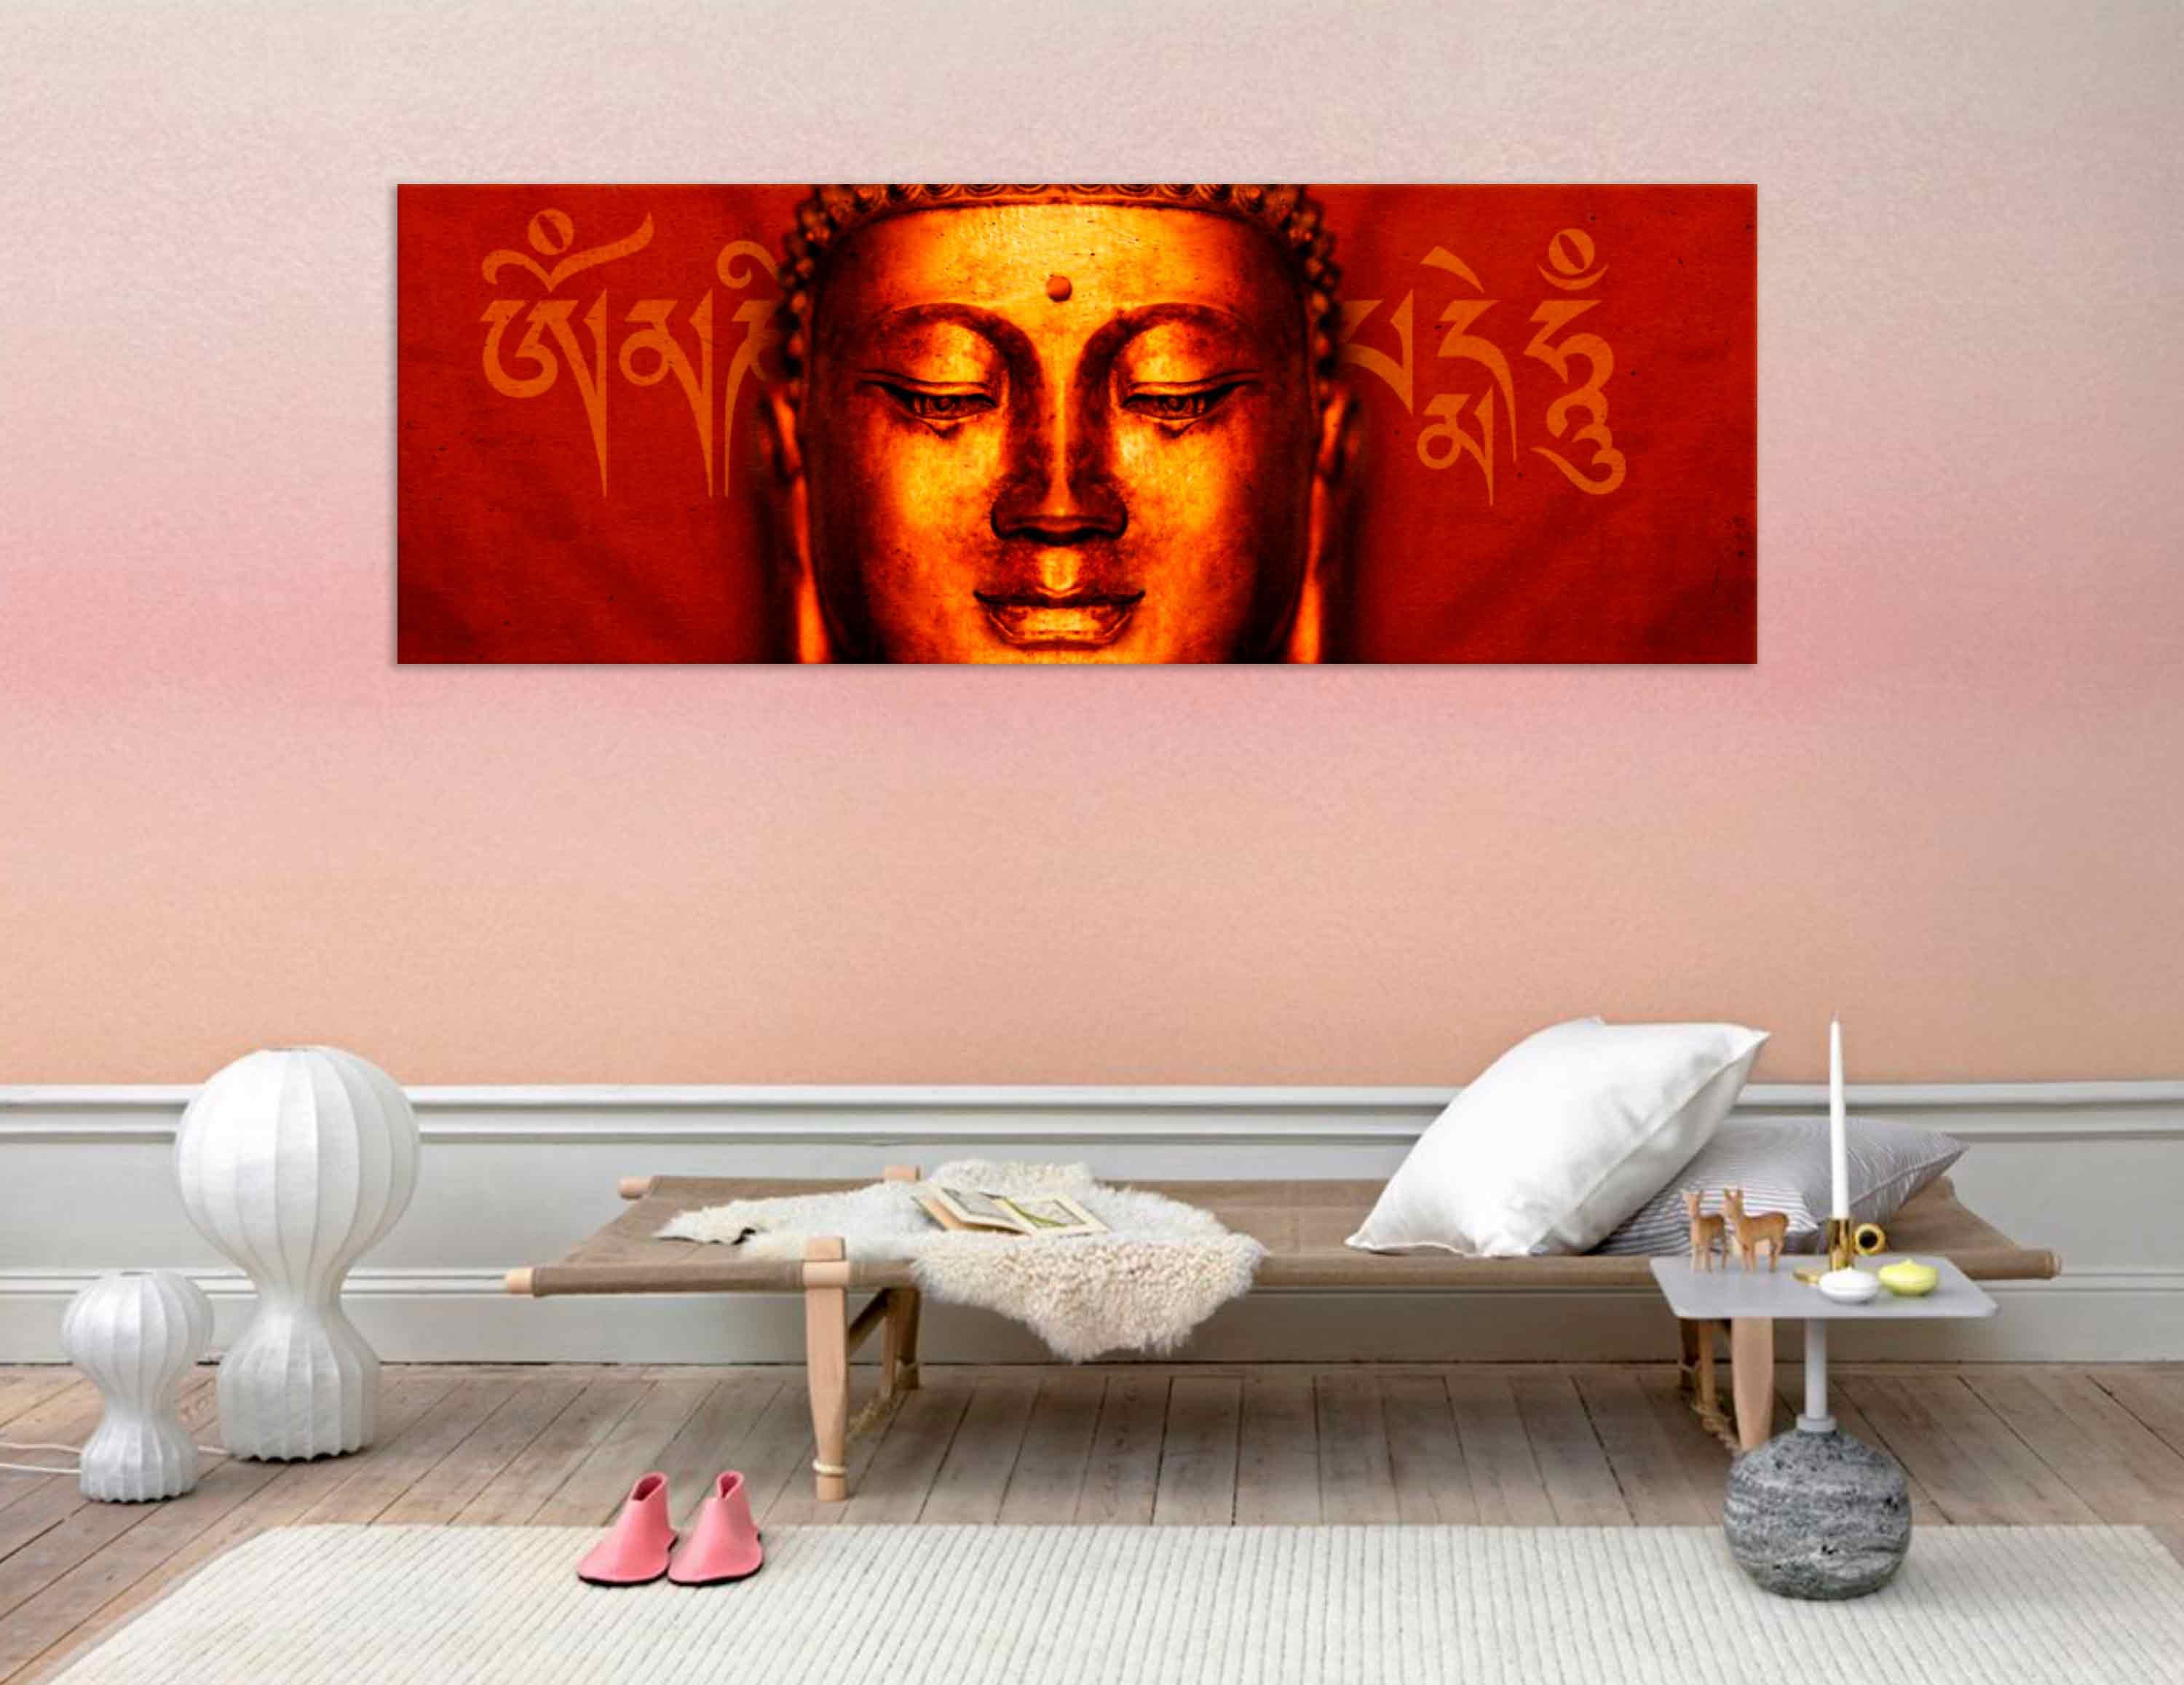 Buddha Abstract Print Buddha Wall Art Asian Wall Art Decor Etsy Buddha Wall Art Asian Wall Art Buddha Wall Art Decor